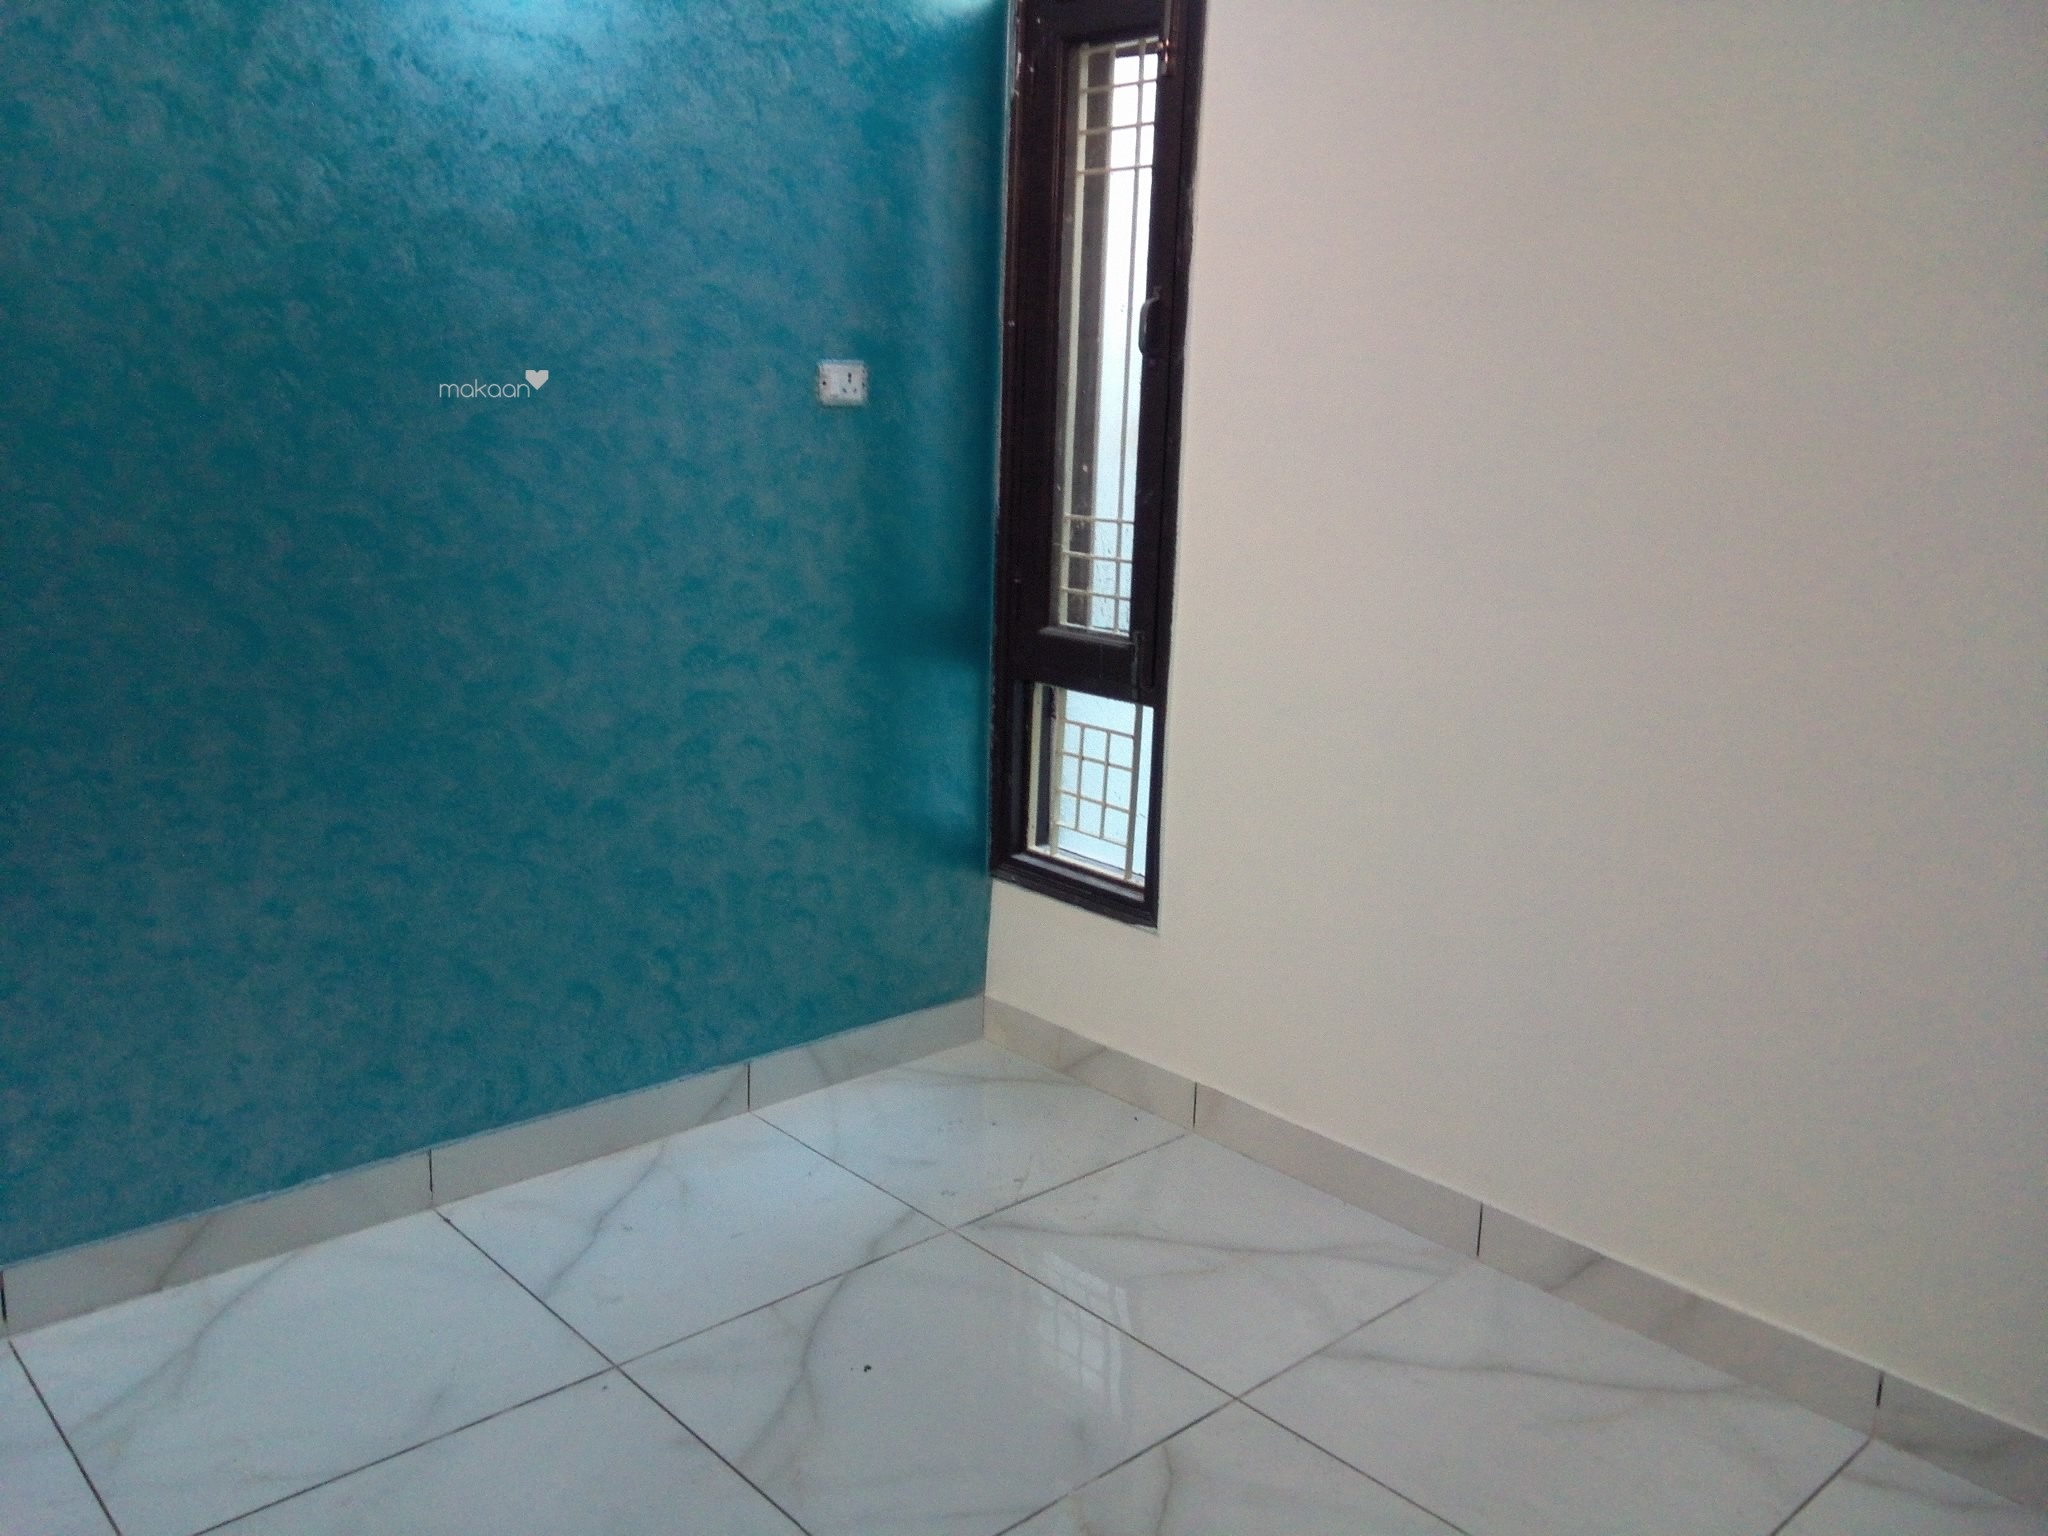 900 sq ft 2BHK 2BHK+2T (900 sq ft) Property By Demera Homz In Project, Sector 4 Vaishali